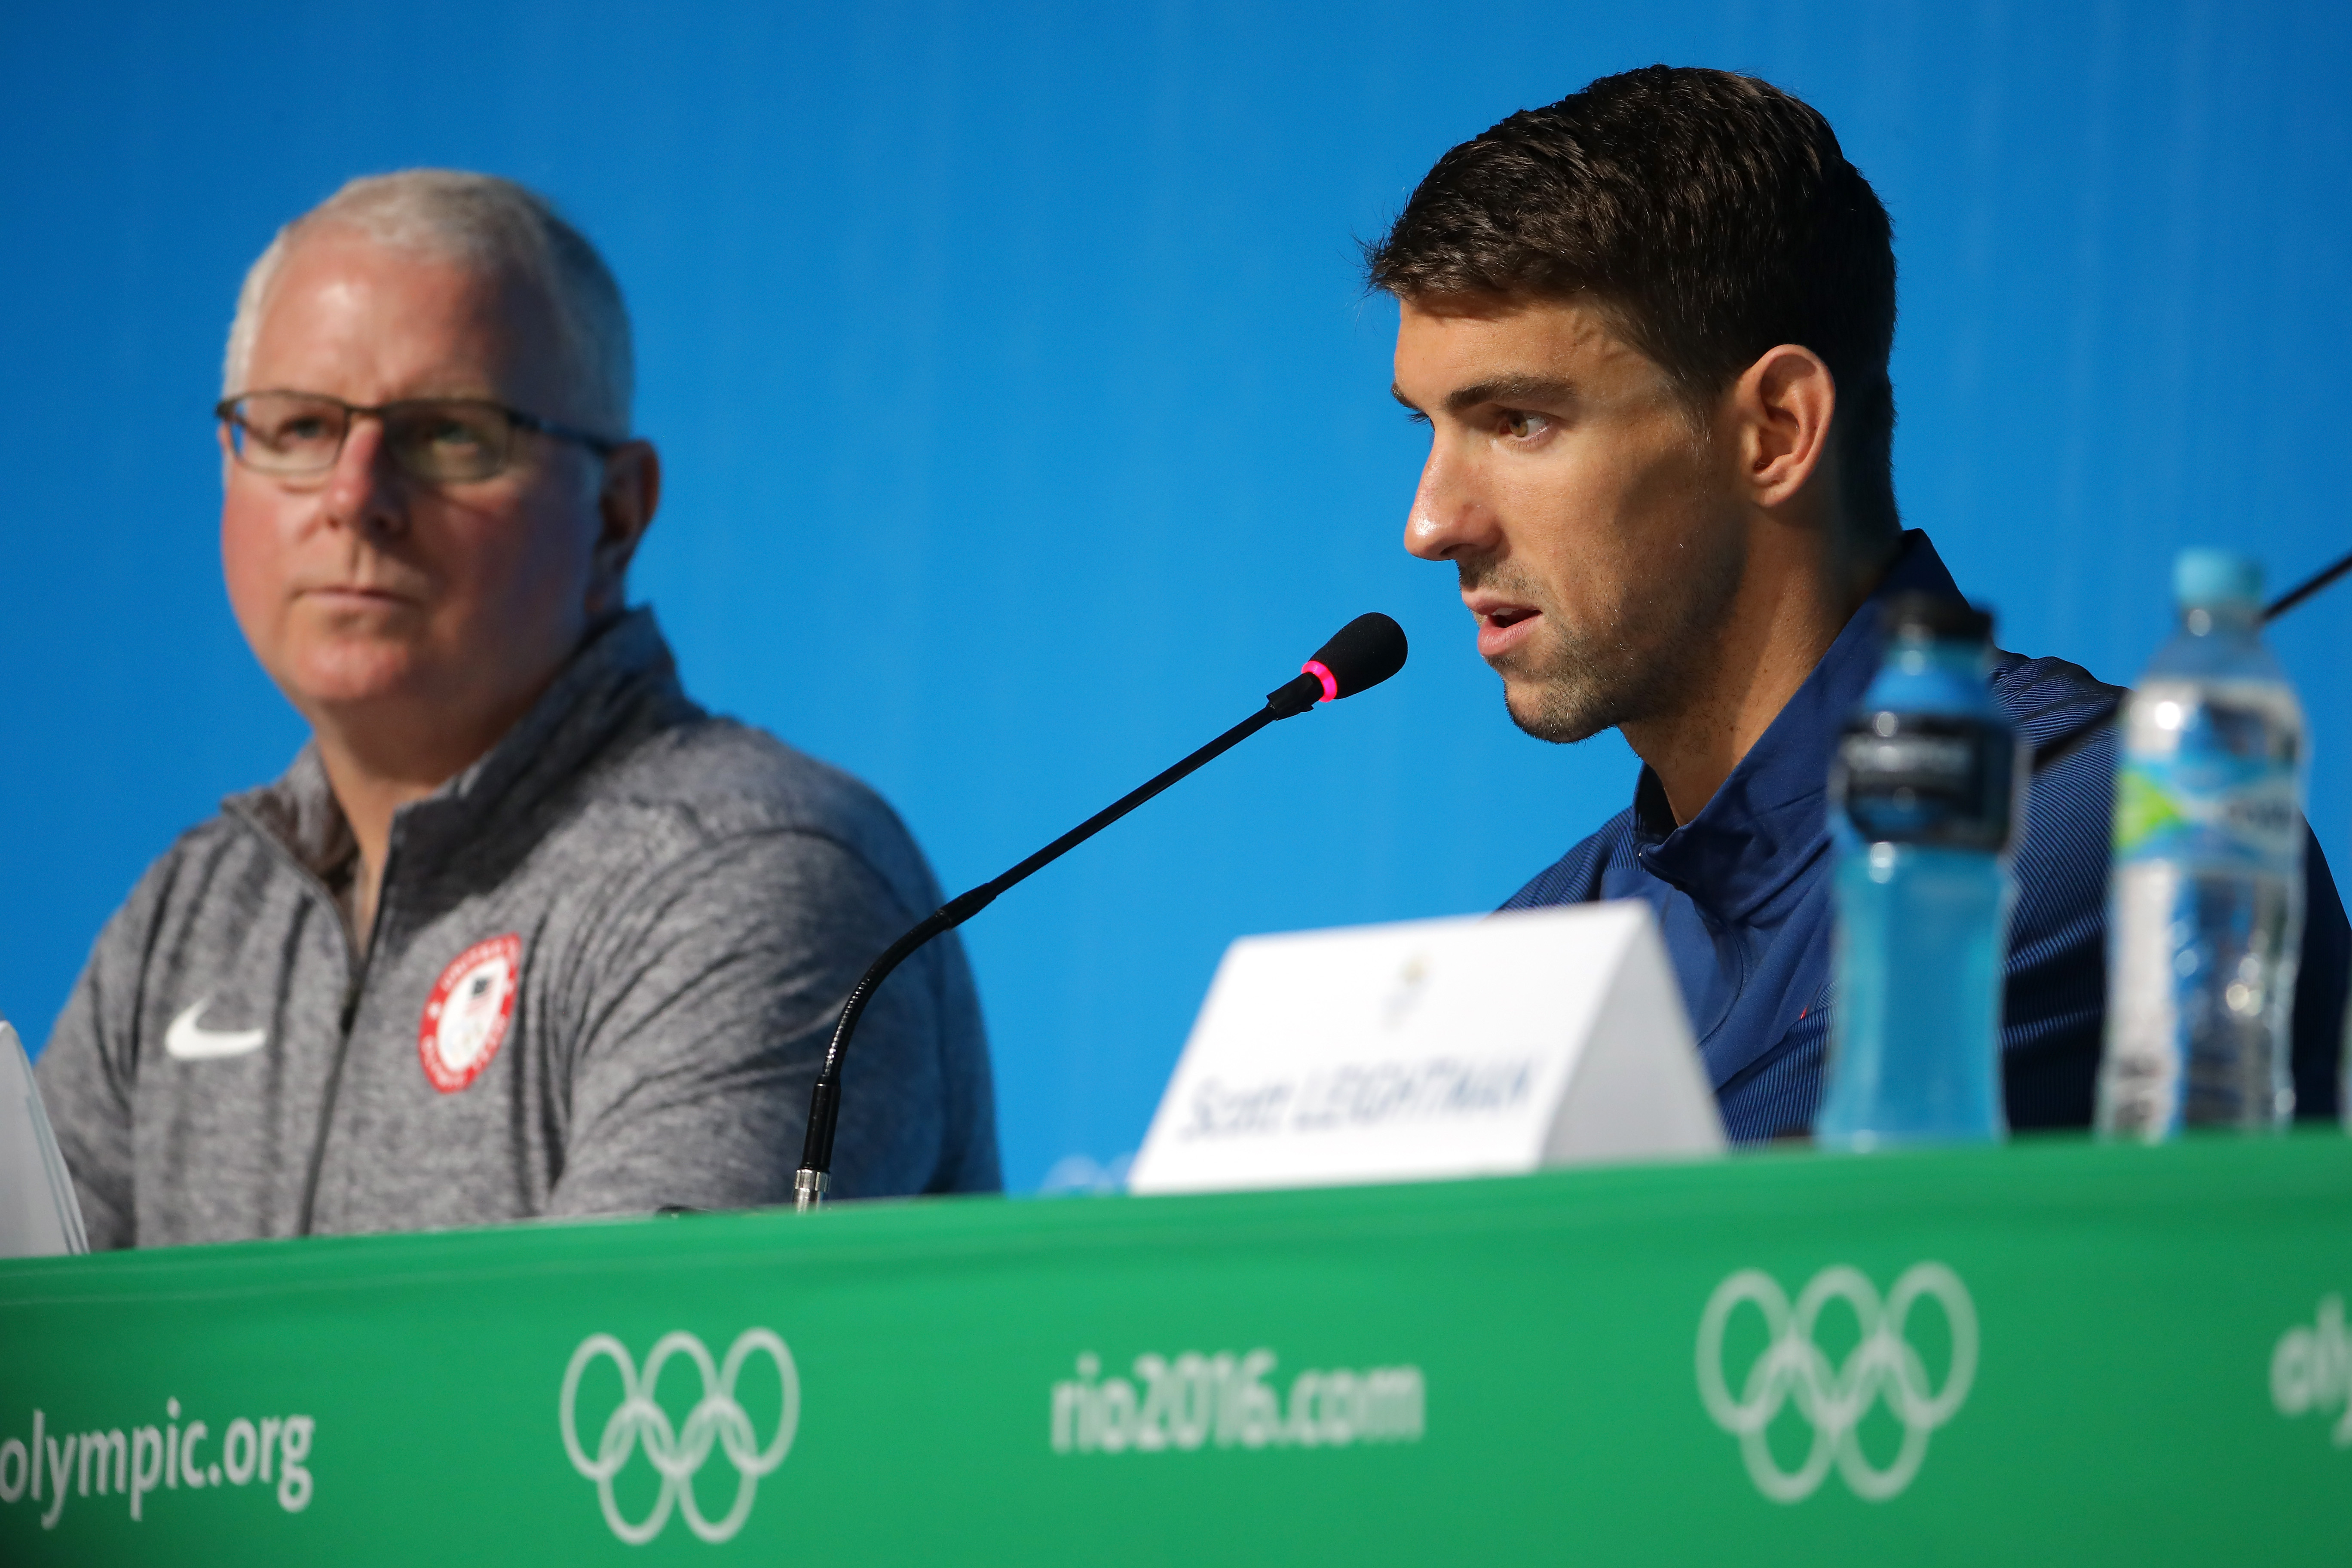 RIO DE JANEIRO, BRAZIL - AUGUST 03: Bob Bowman and Michael Phelps of the United States speak with the media during a press conference at the Main Press Centre ahead of the Rio 2016 Olympic Games on August 3, 2016 in Rio de Janeiro, Brazil. (Photo by Chris Graythen/Getty Images)